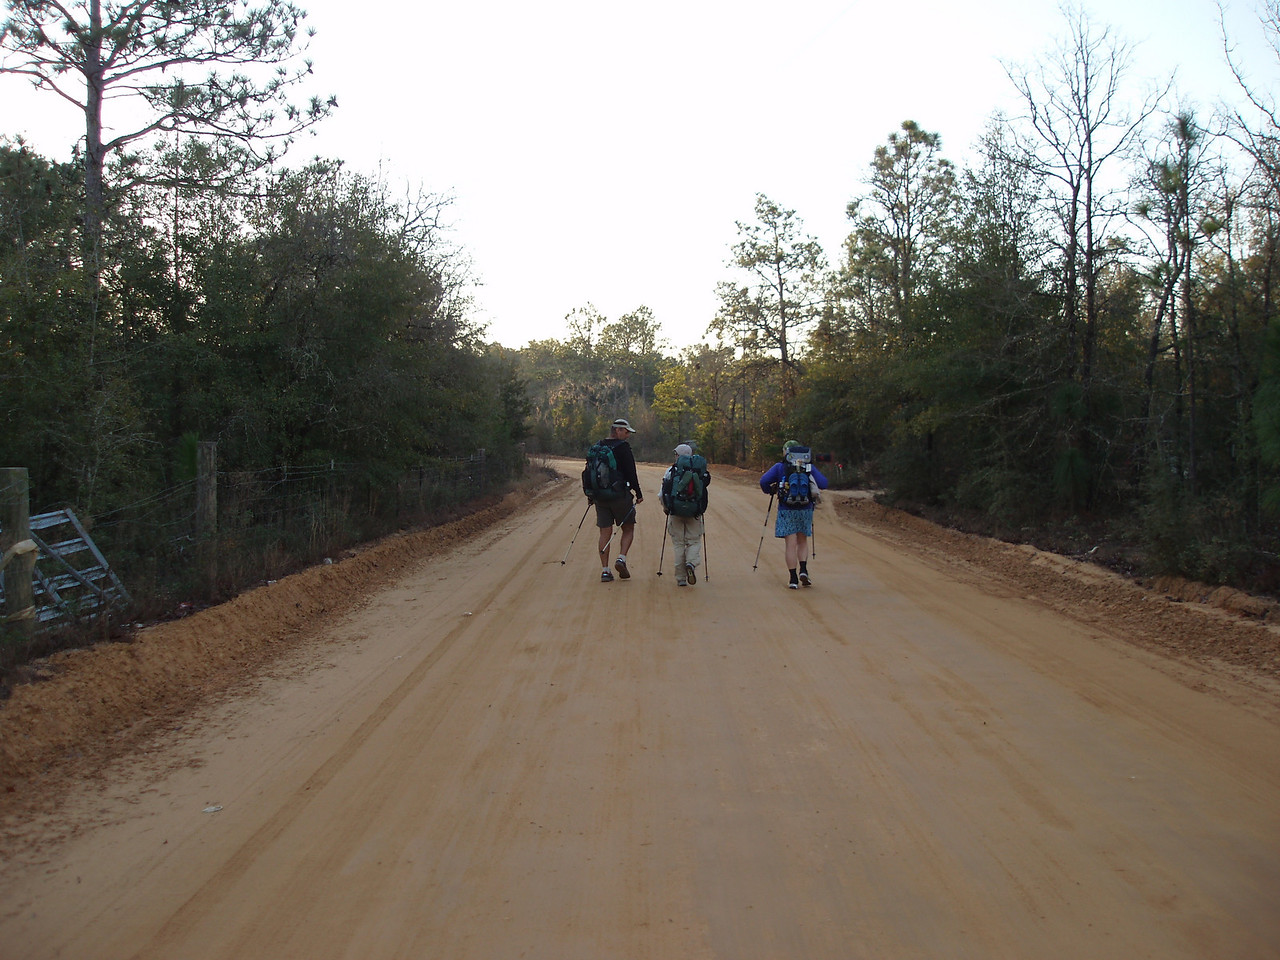 Hiking back roads in Washington County<br /> PHOTO CREDIT: Robert Coveney / Florida Trail Association